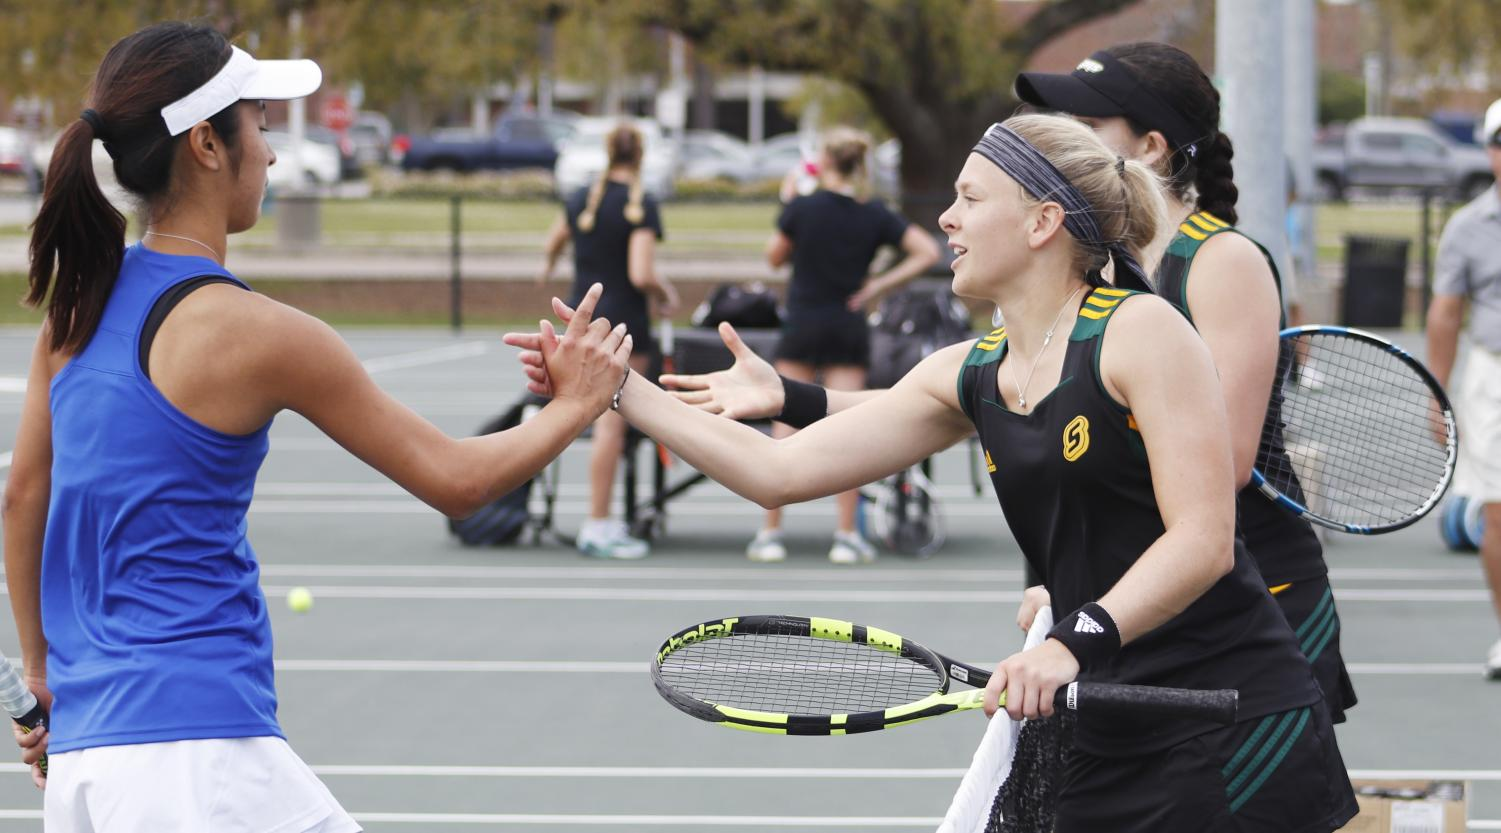 Although the tennis team started their season this September, they will continue competition in 2019 along with several other sport teams. The tennis team's first match of the spring semester will be against Tulane University on Jan. 27.